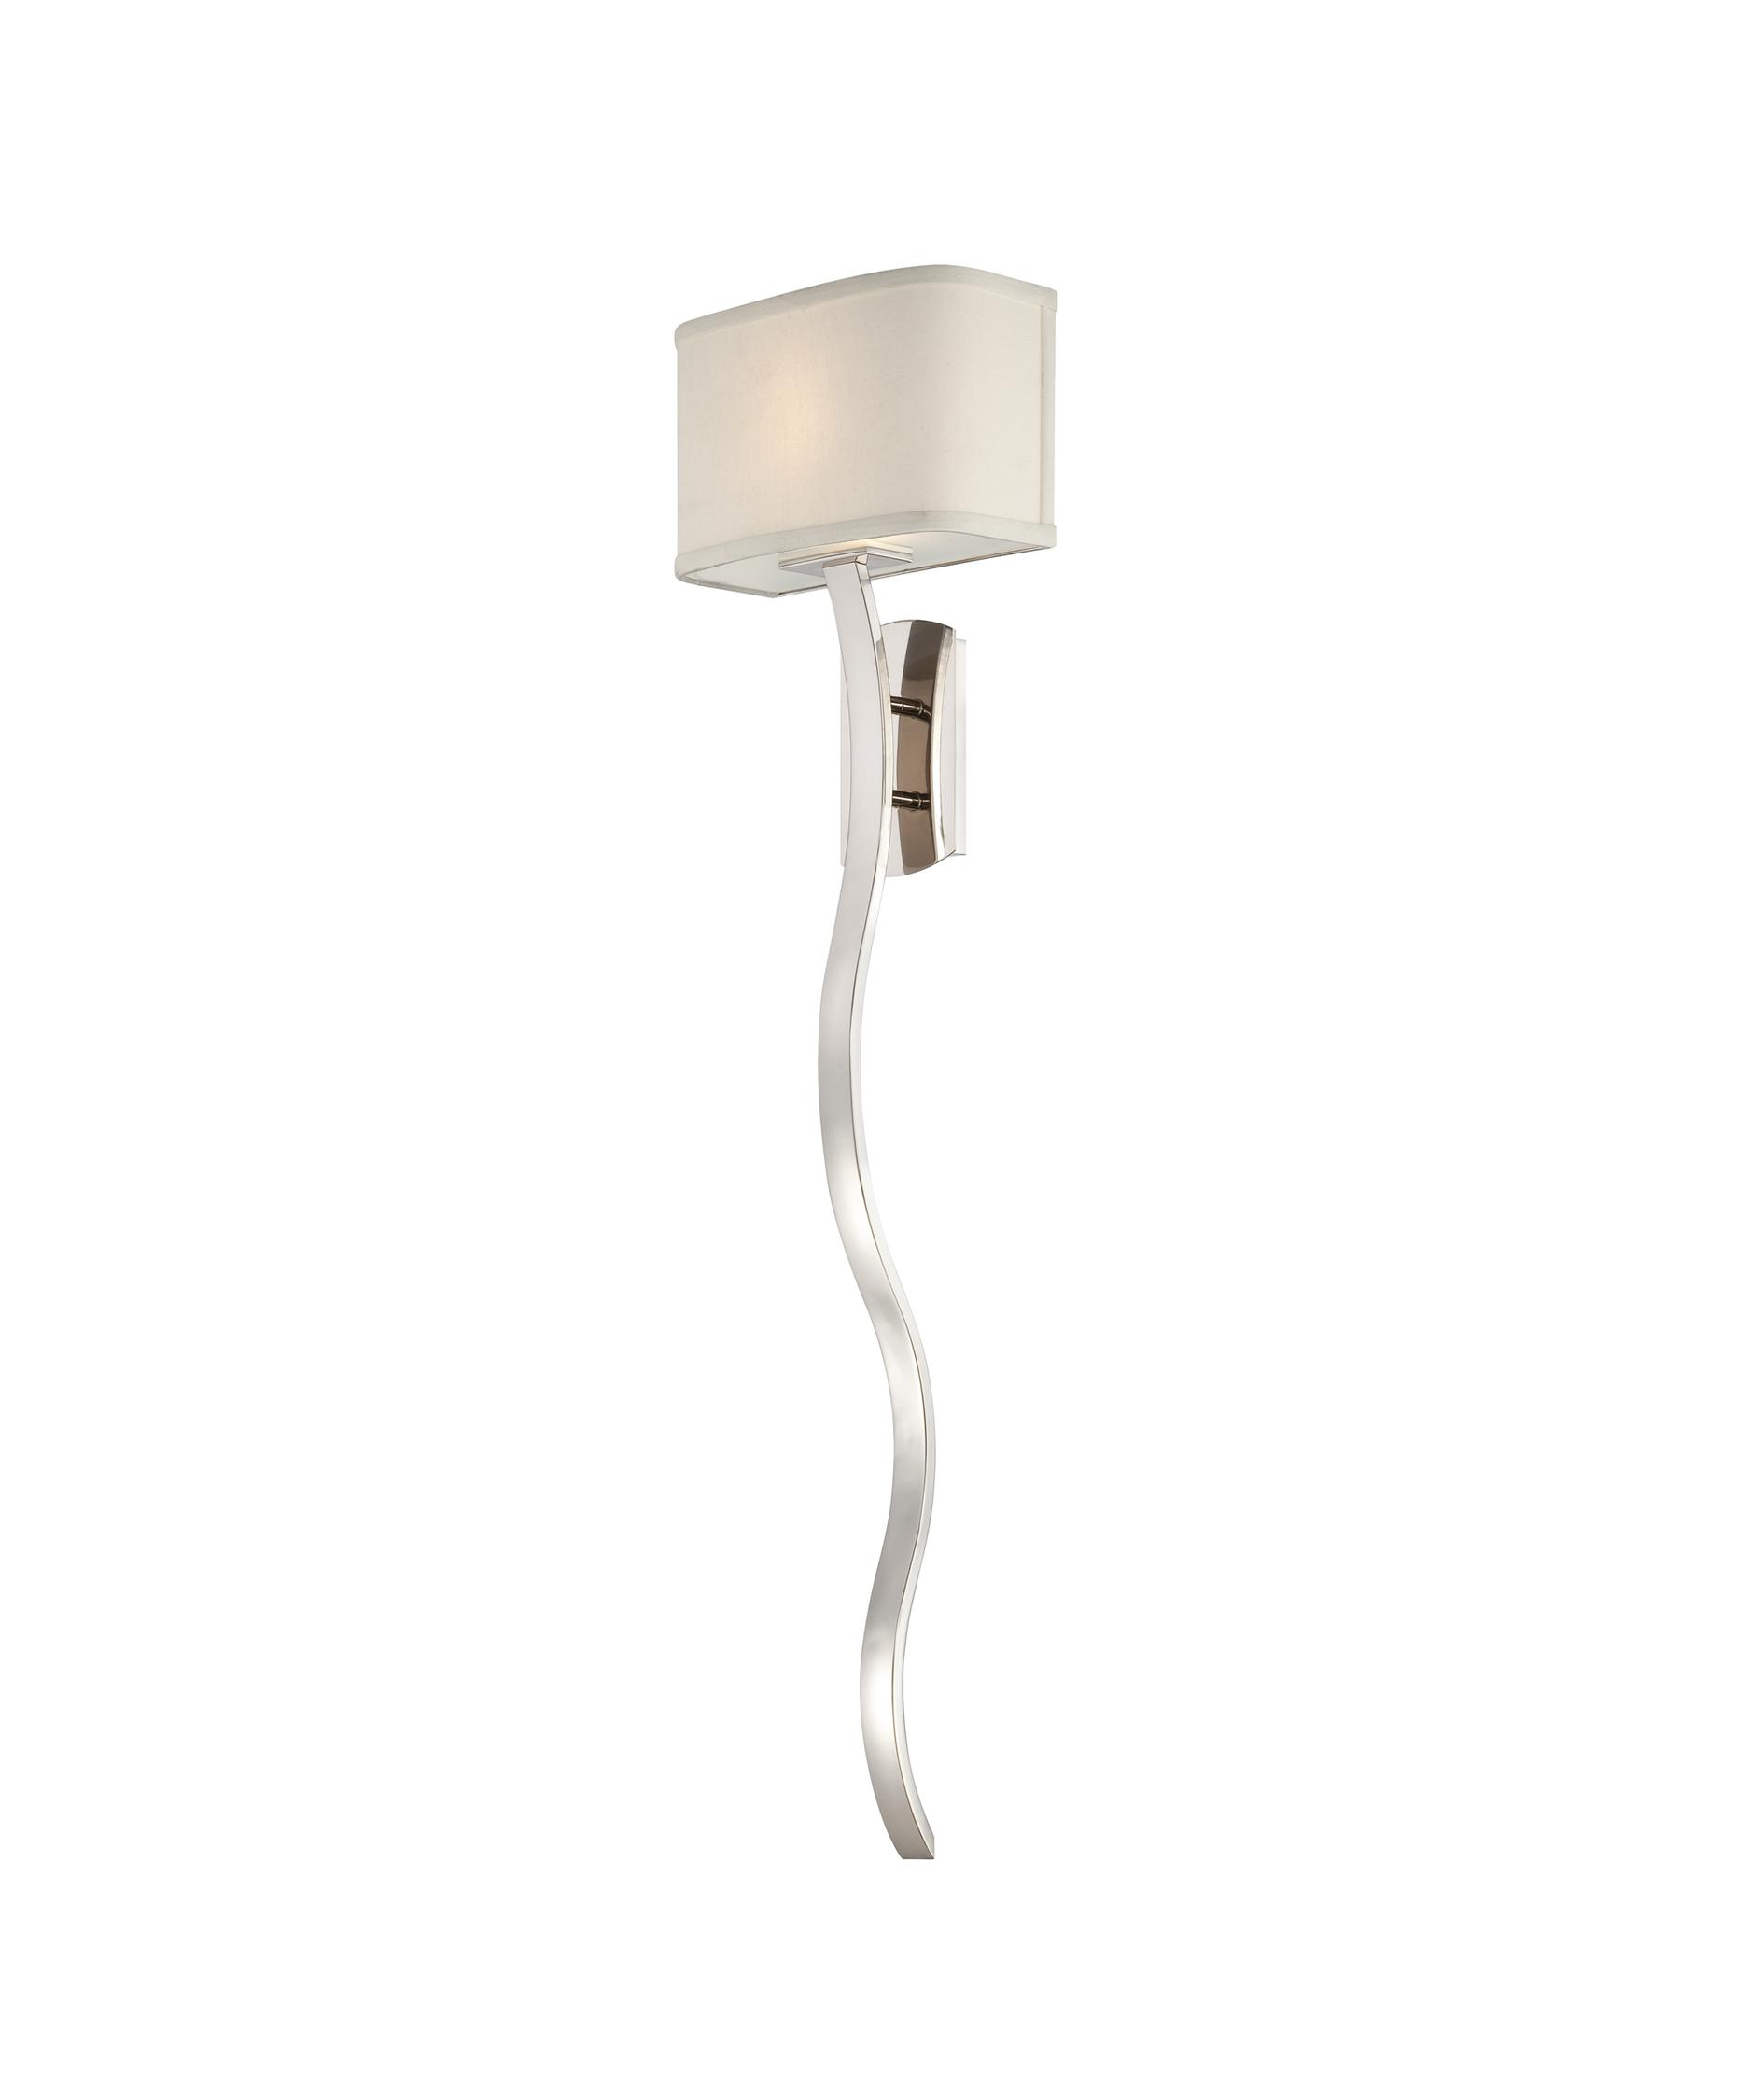 Quoizel Bathroom Sconces quoizel uphl8701 uptown holita 12 inch wide wall sconce   capitol